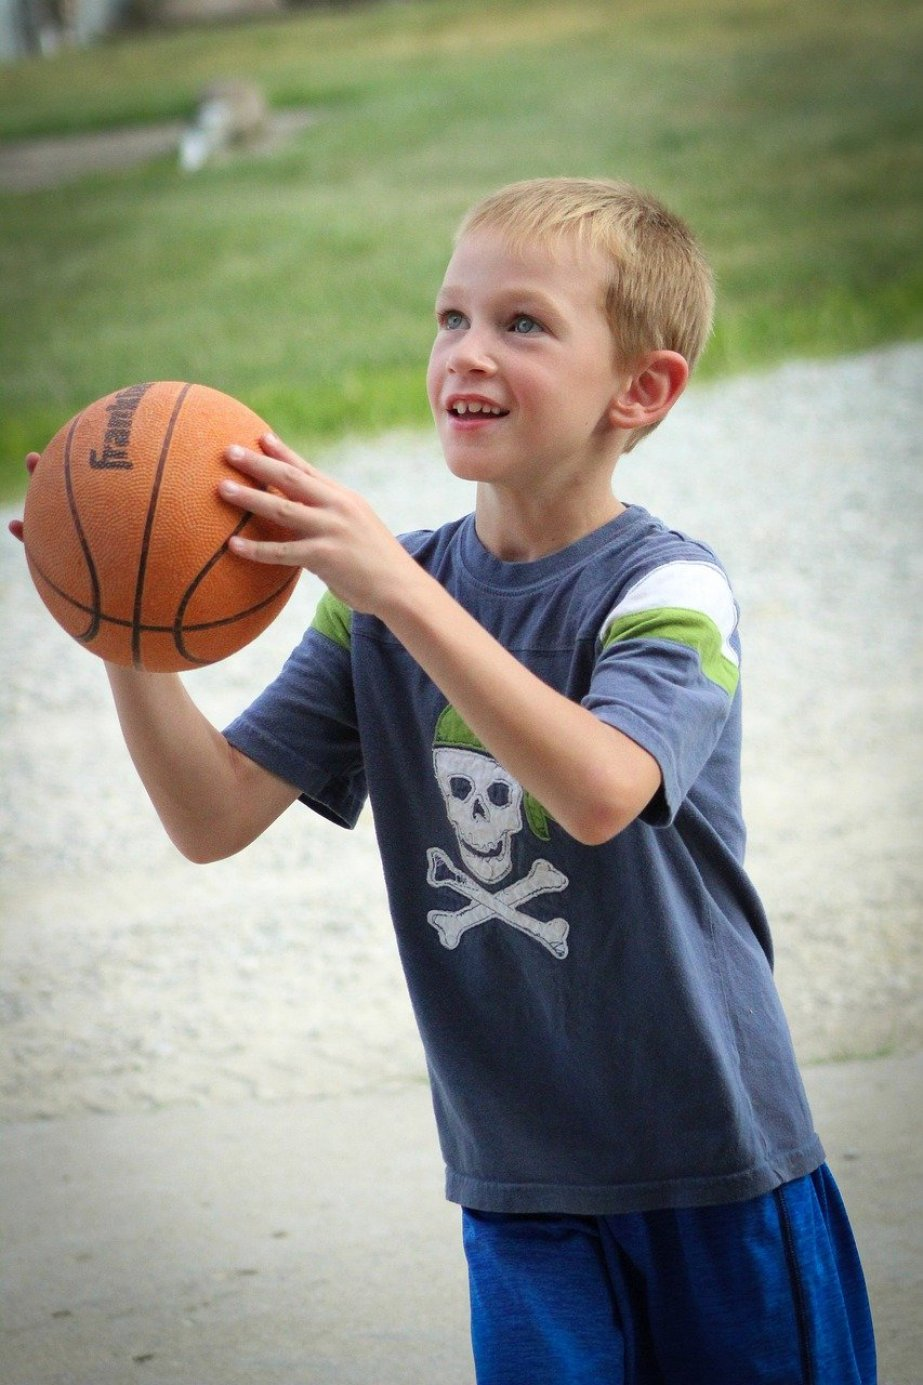 A young boy in shorts and t-shirt getting ready to shoot a basketball.